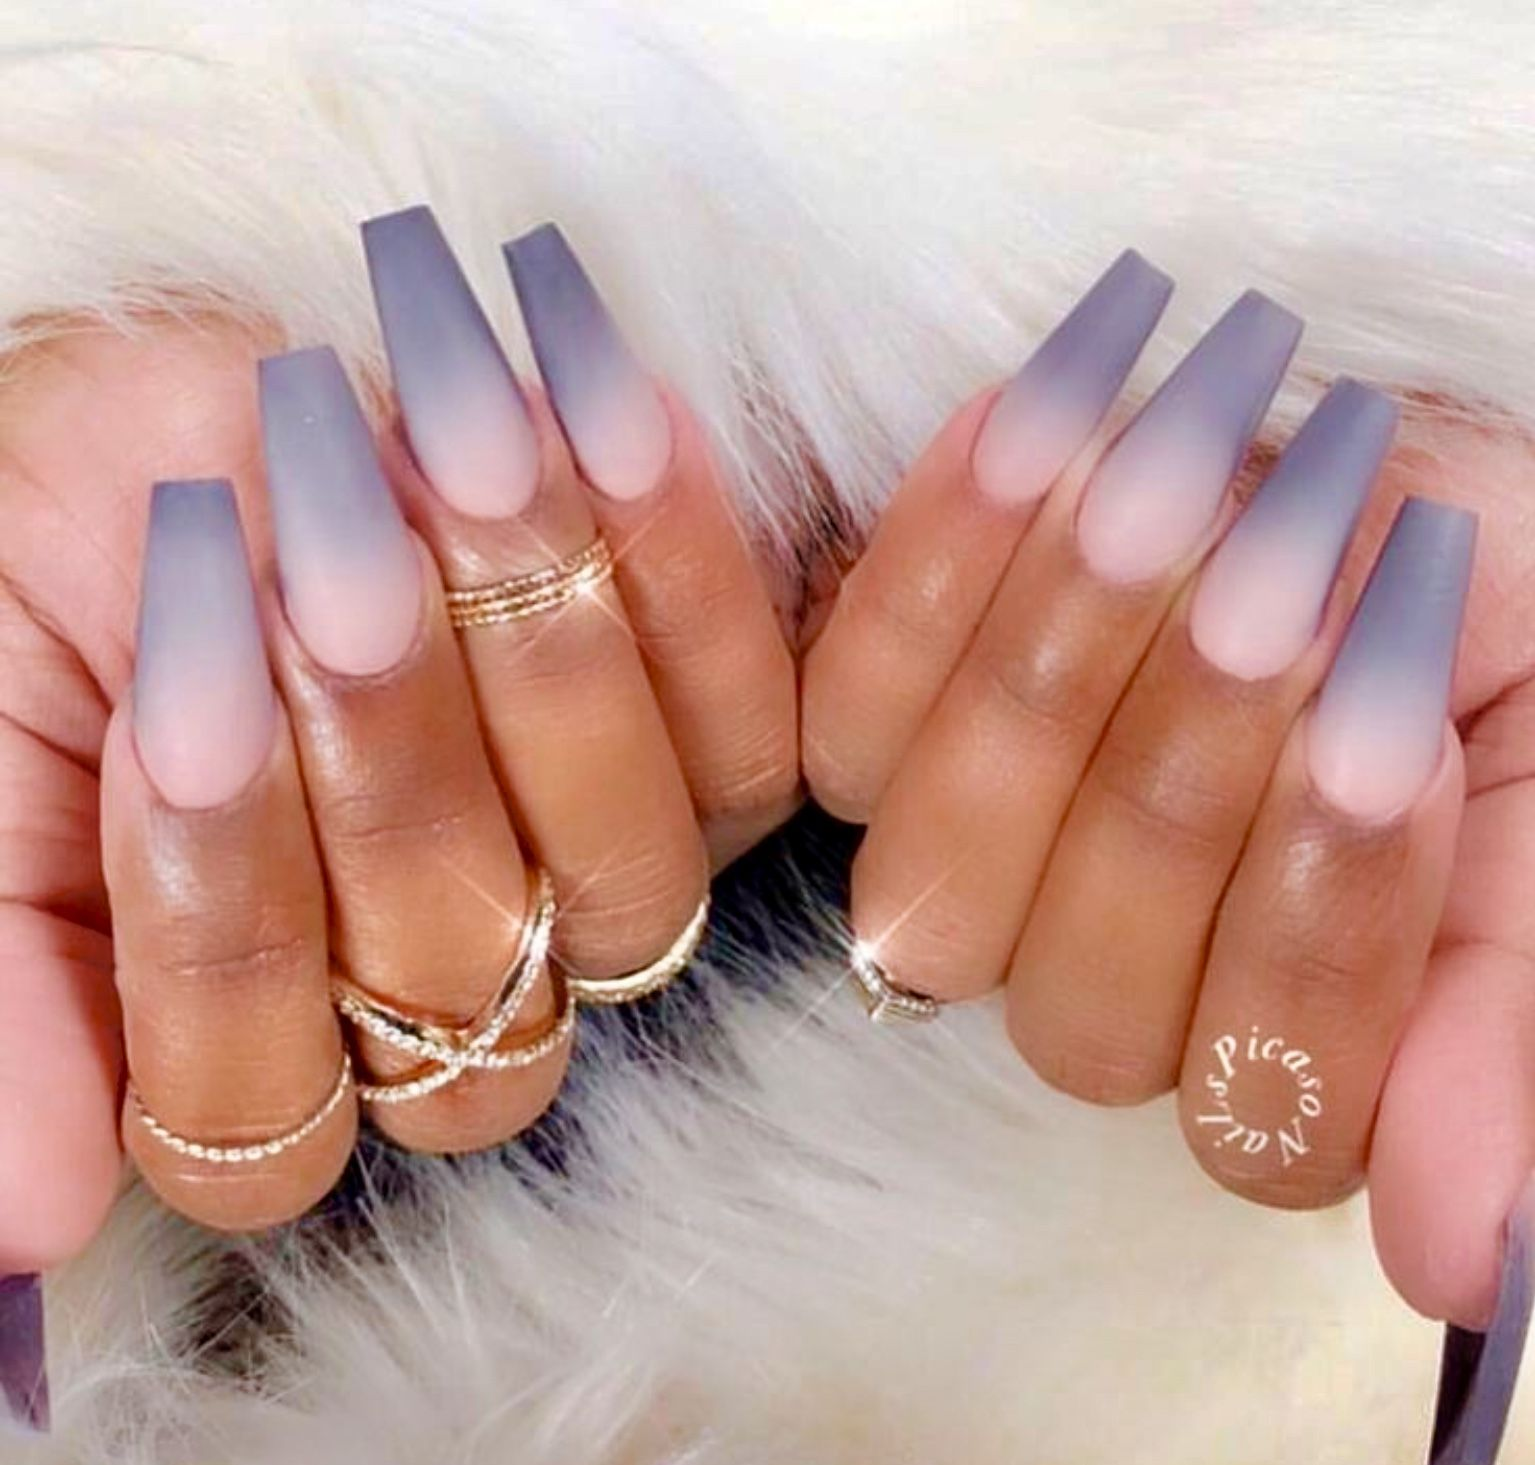 Pin By Yasmin Almeida On Swag Nails In 2020 Ombre Acrylic Nails Claw Nails Ombre Nail Designs